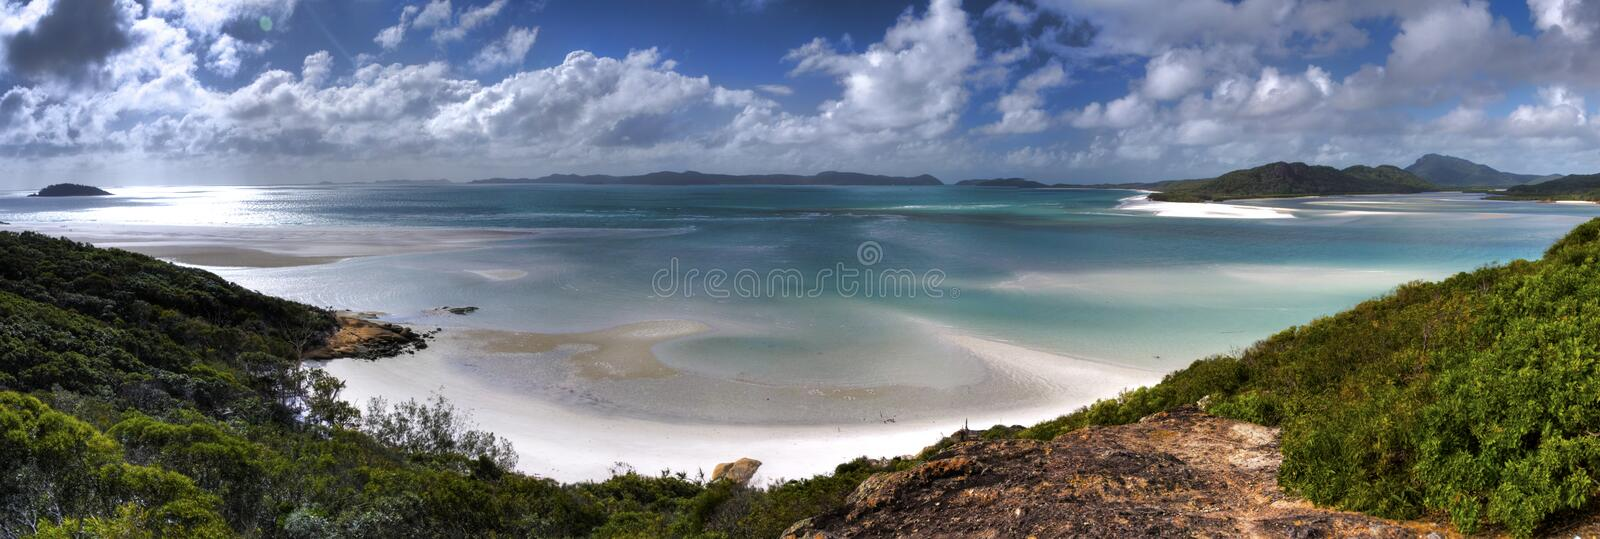 Tropical White Haven Beach stock photography